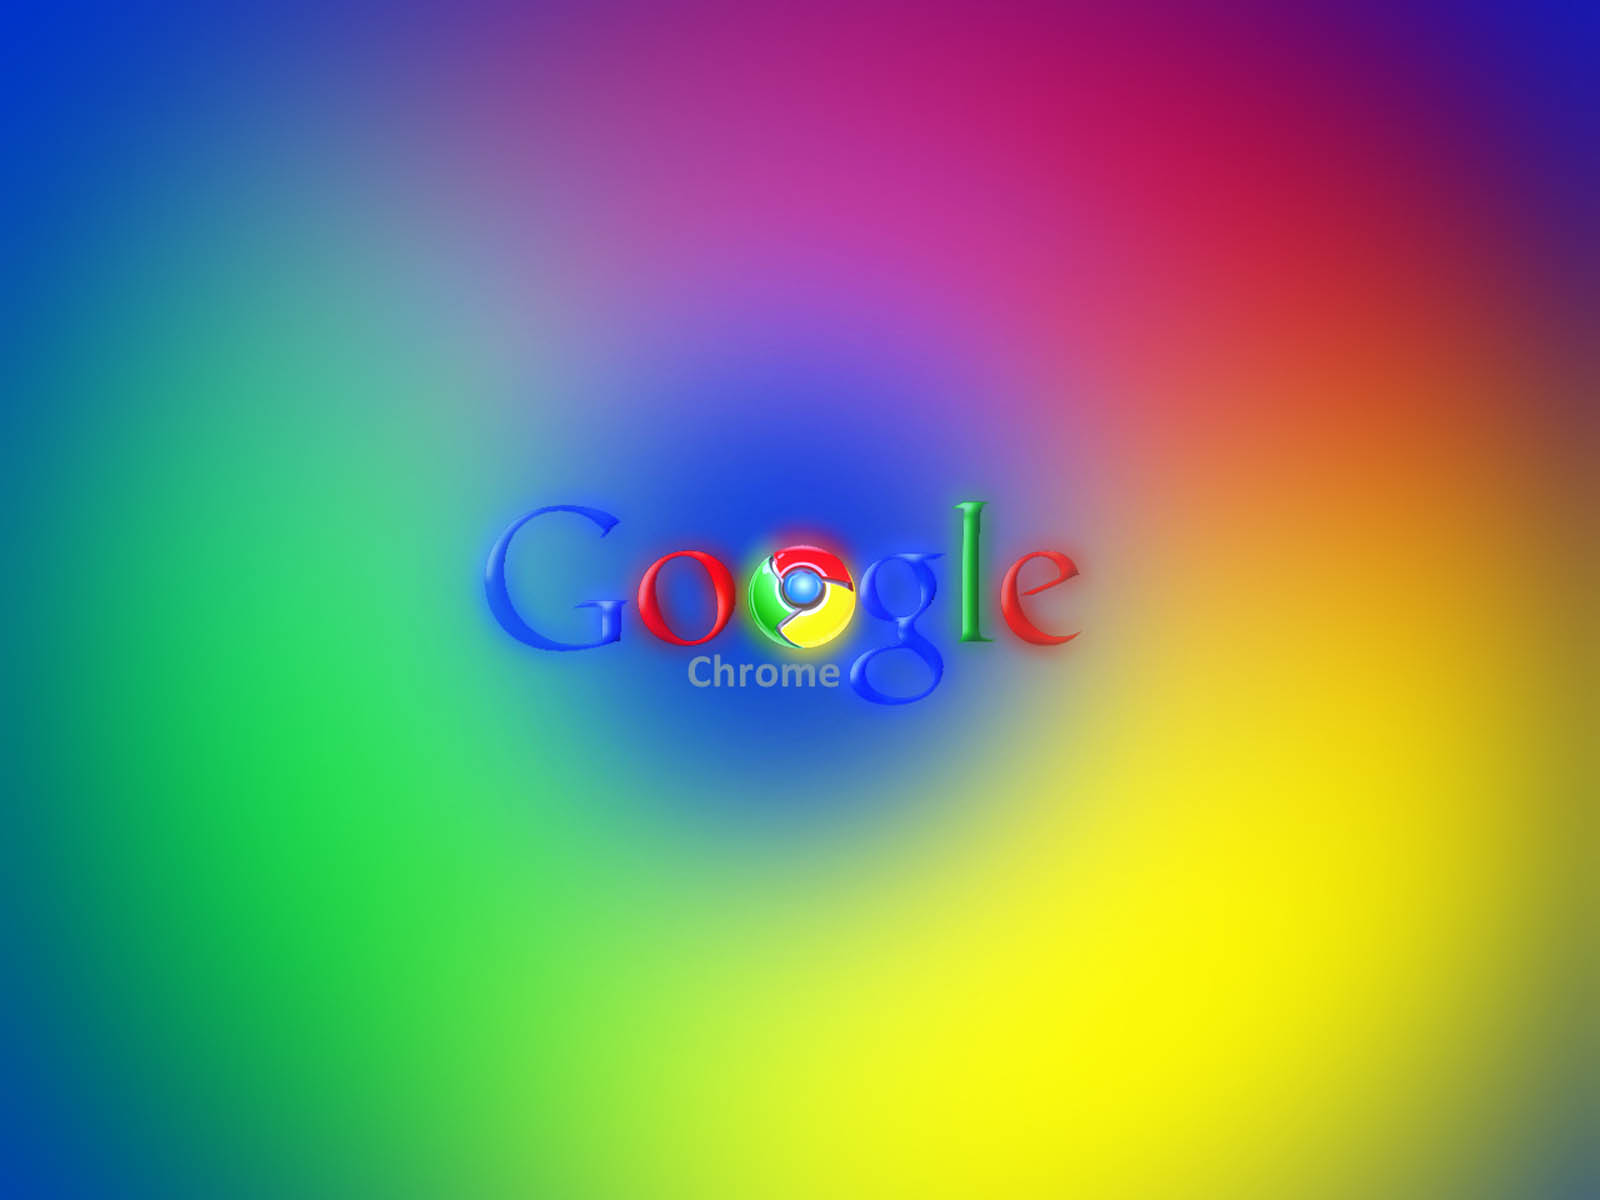 wallpaper: Google Chrome Wallpapers